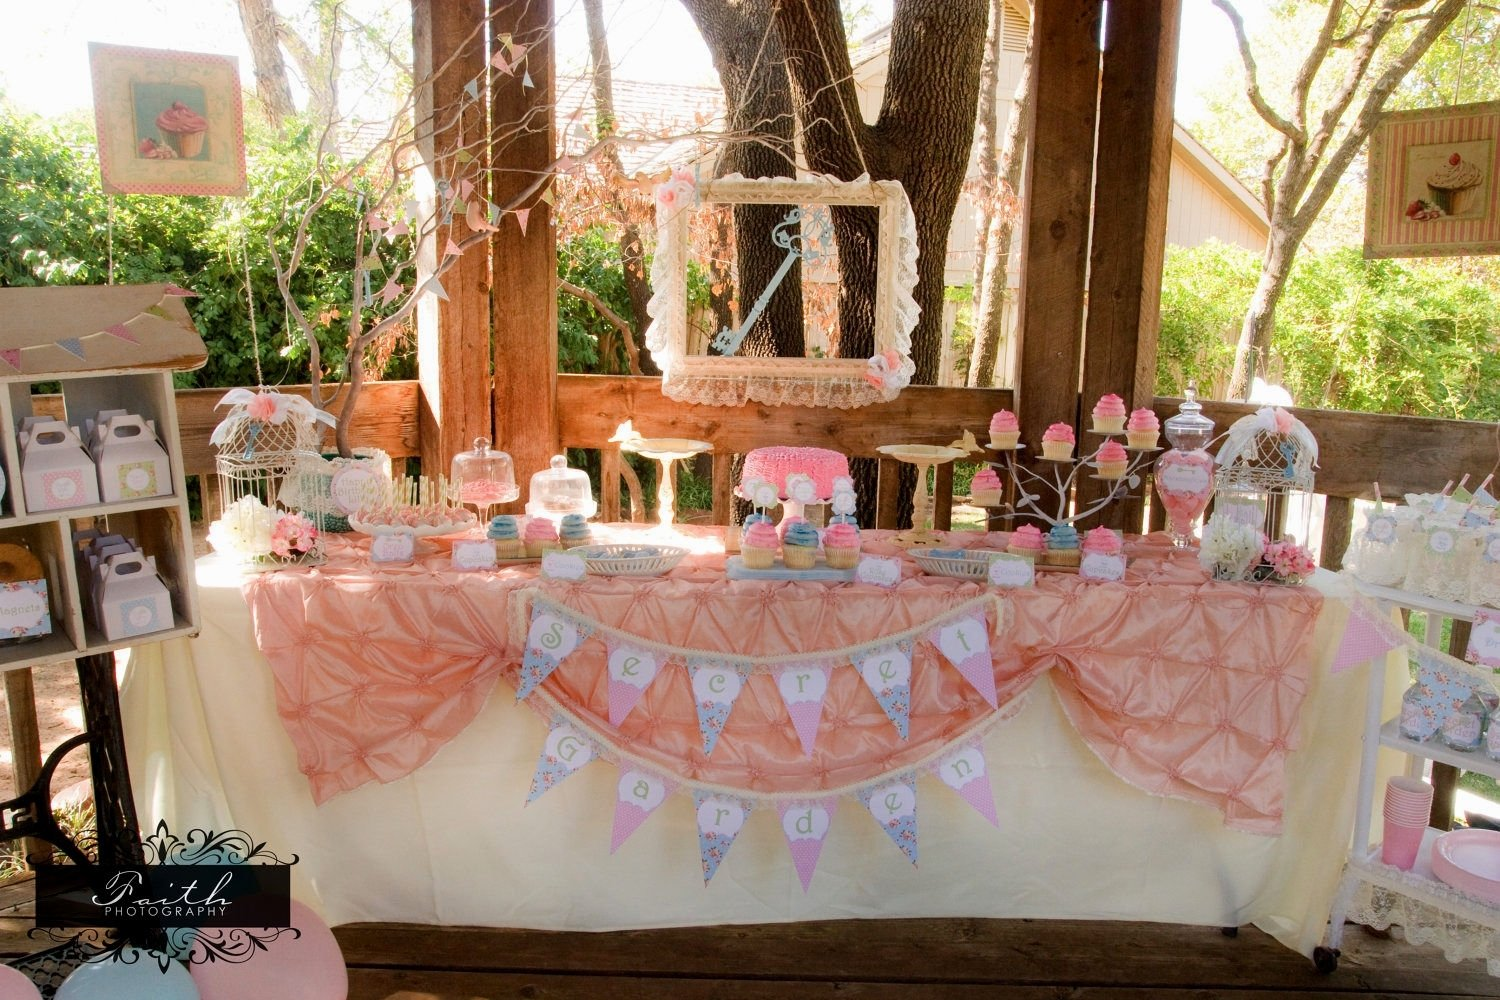 10 Unique Ideas For Adult Birthday Parties tea party birthday party ideas for adults decorating of party 3 2021